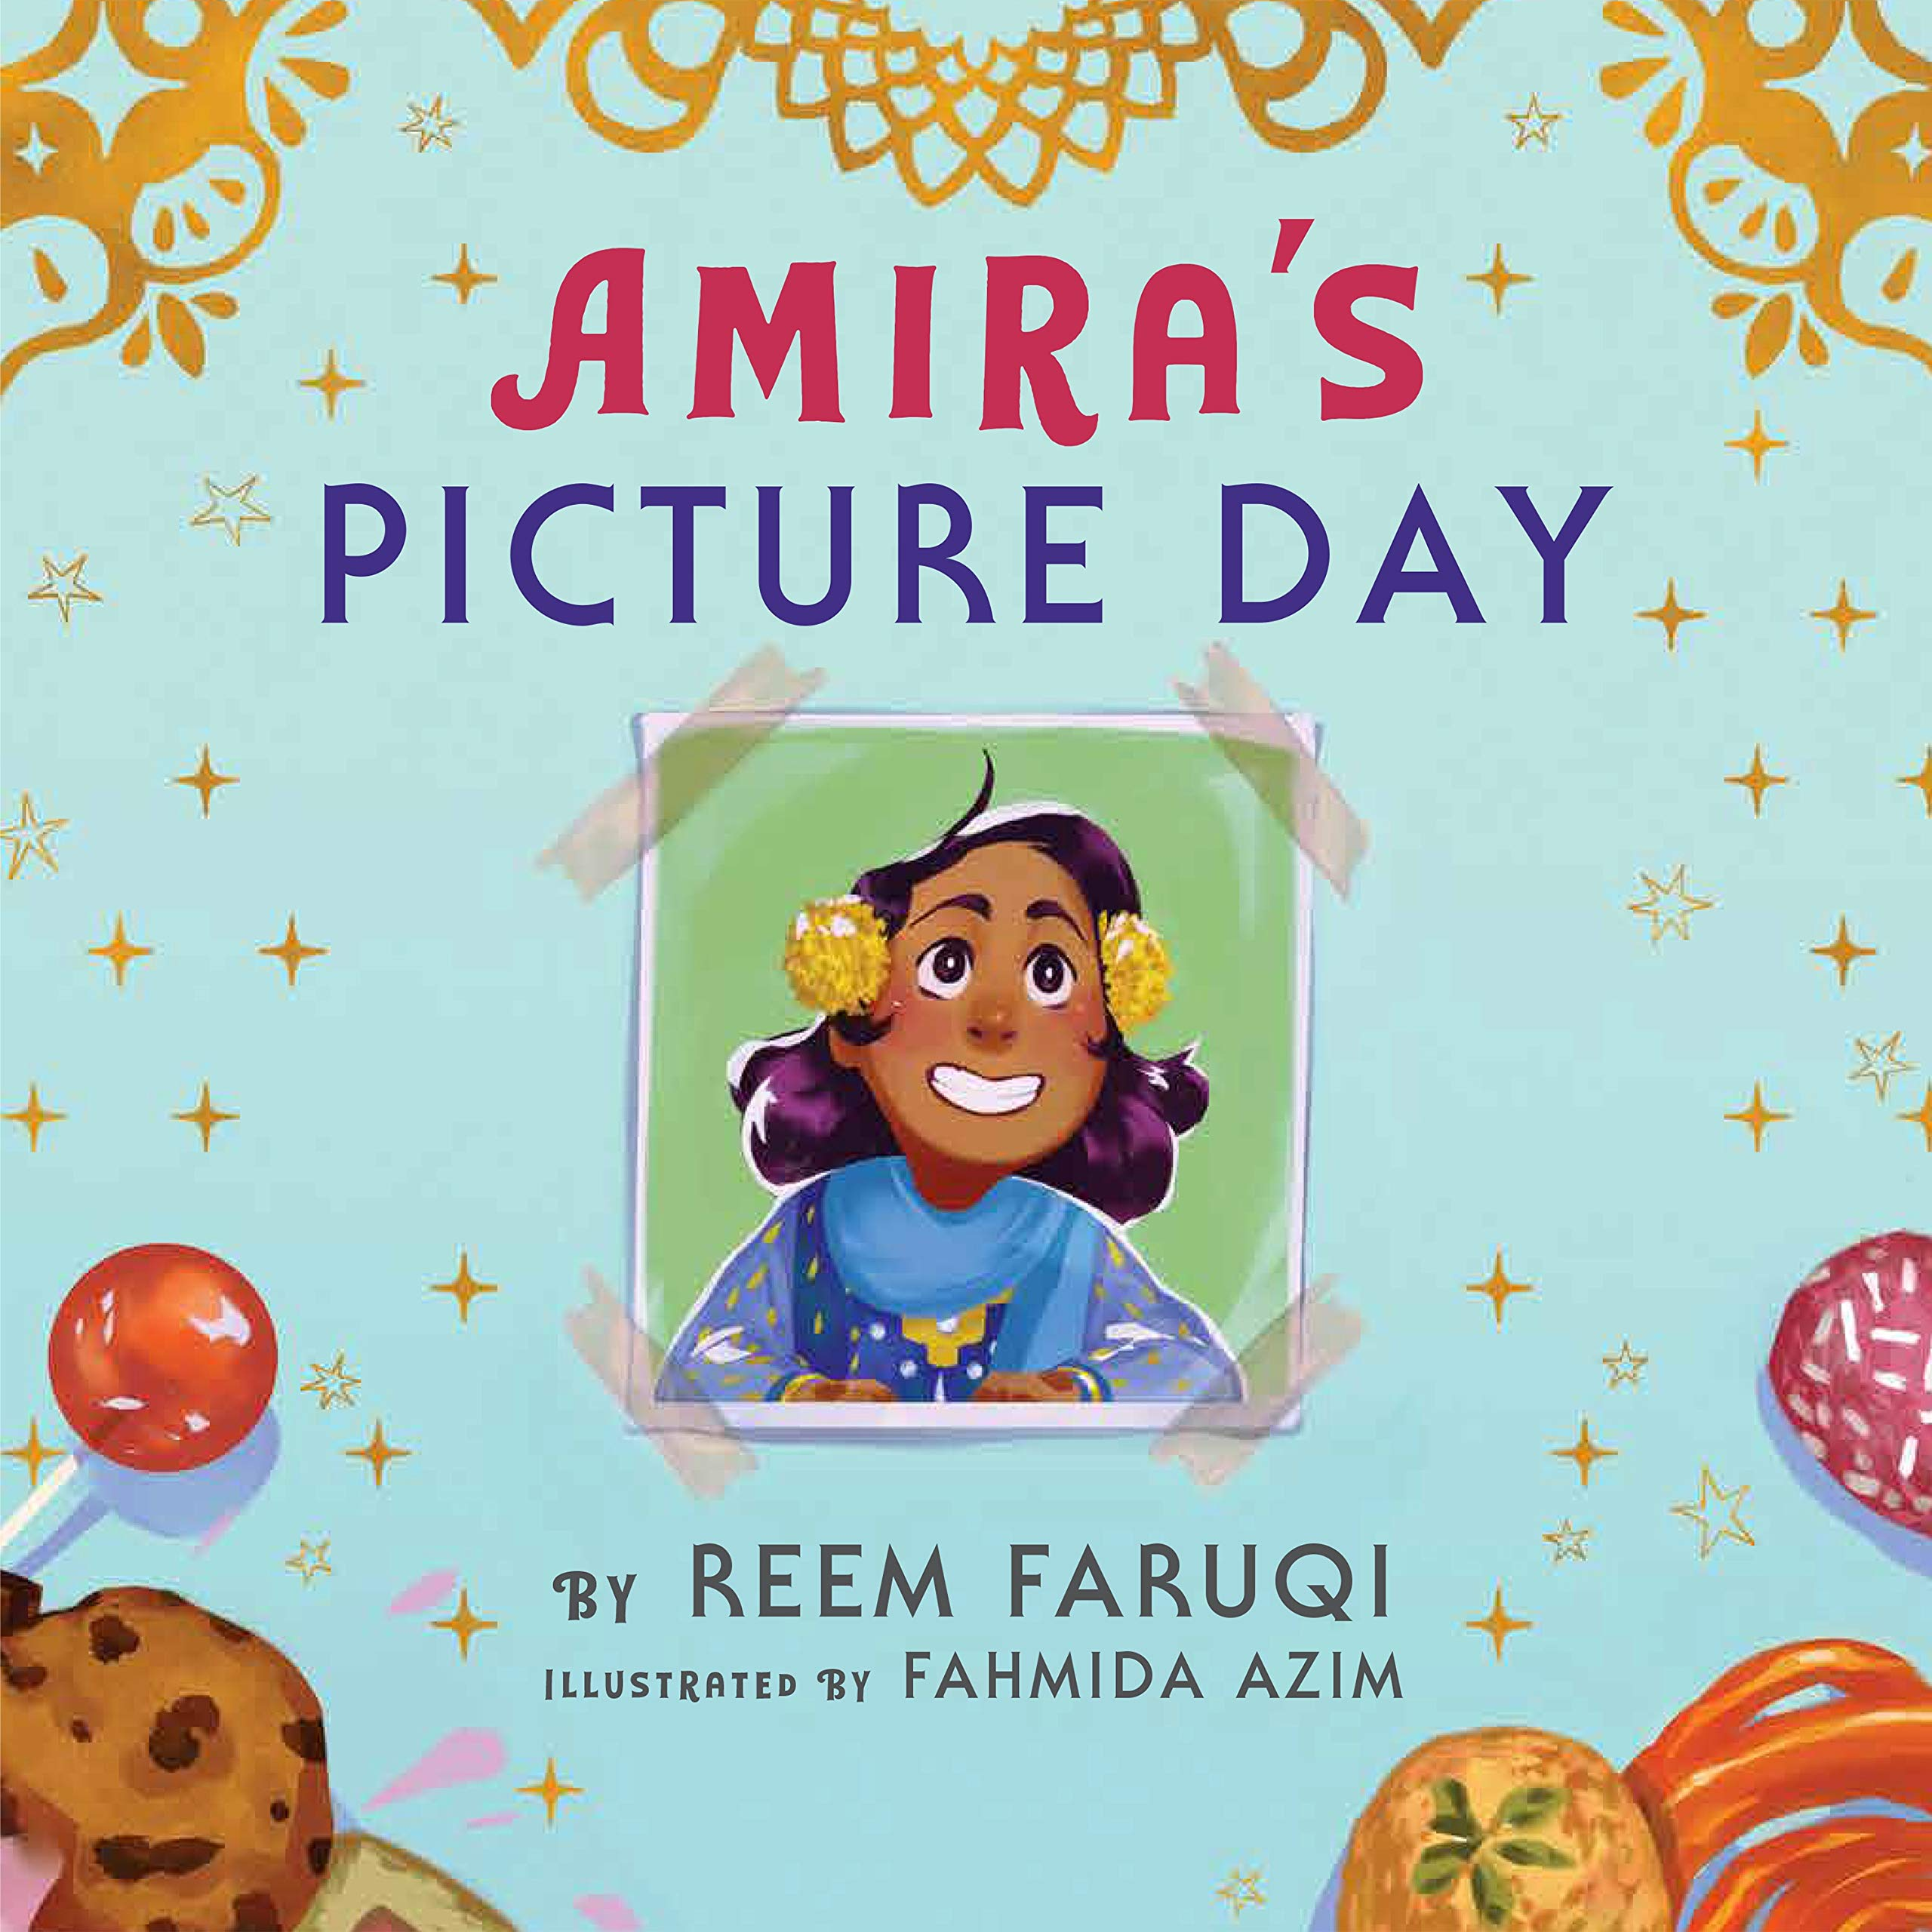 Amazon.com: Amira's Picture Day (9780823440191): Faruqi, Reem, Azim,  Fahmida: Books